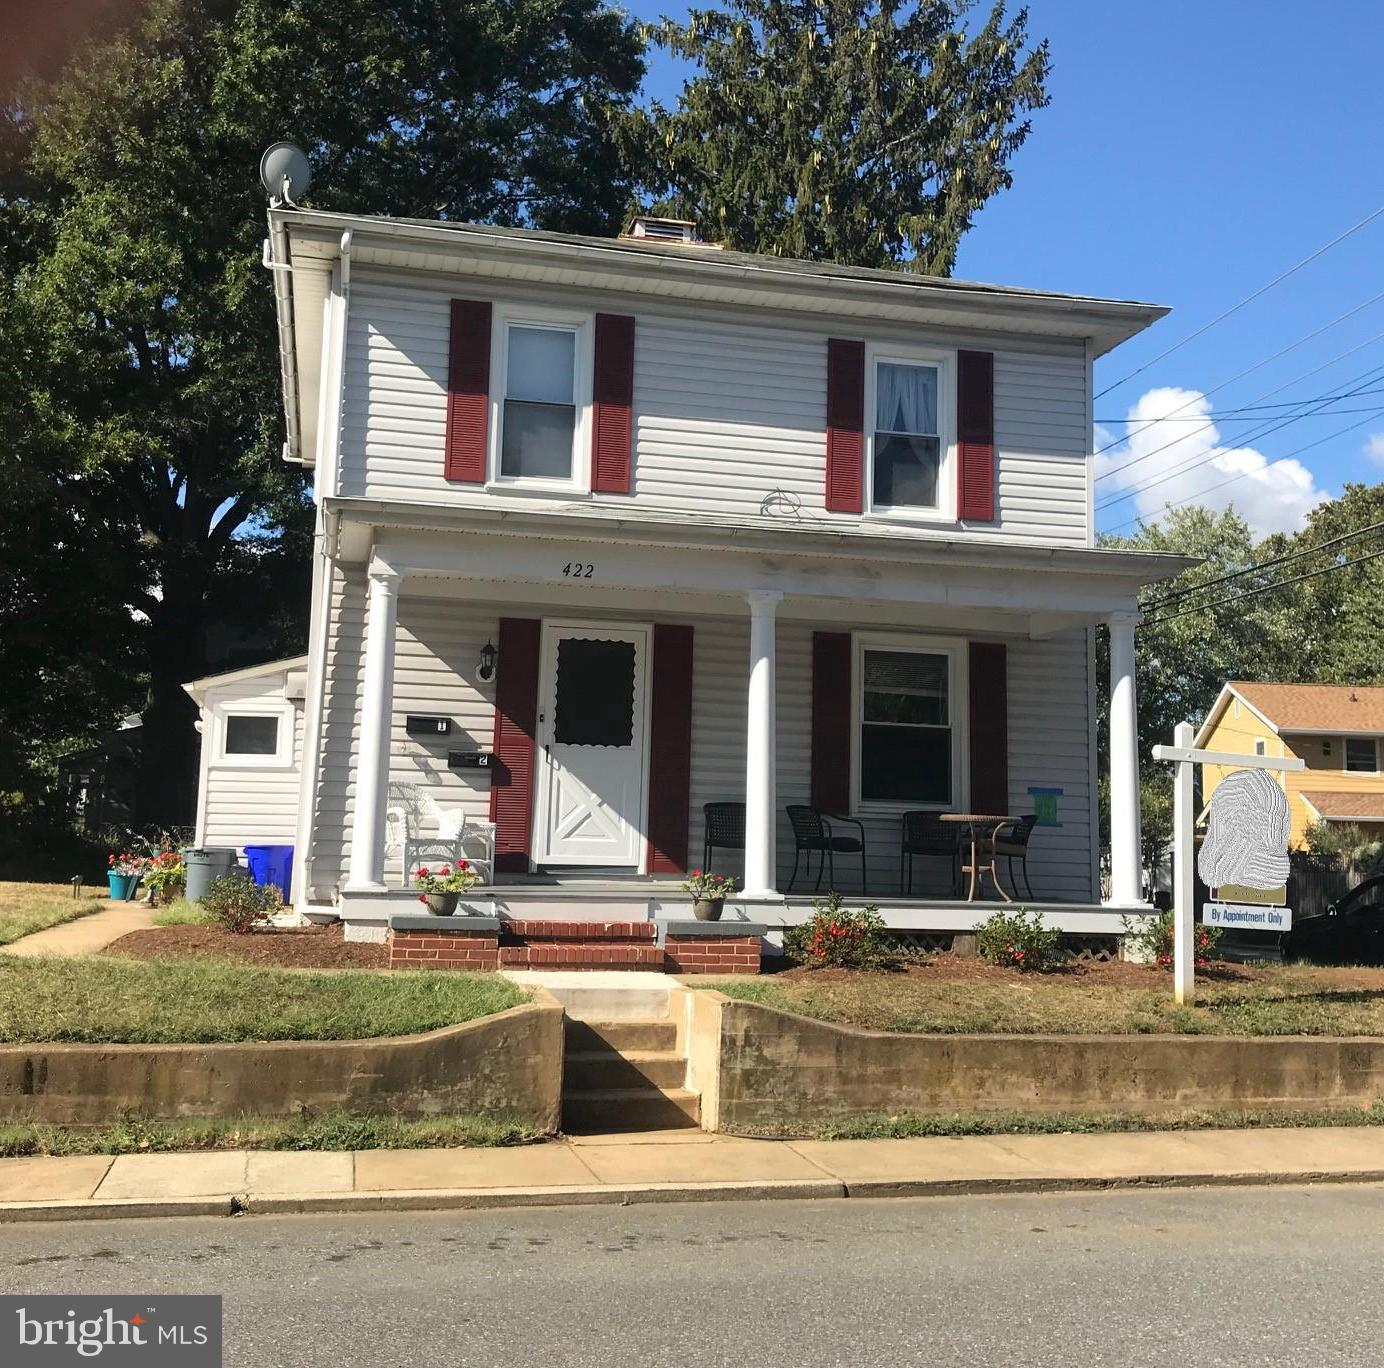 422 State St, Annapolis, MD, 21403